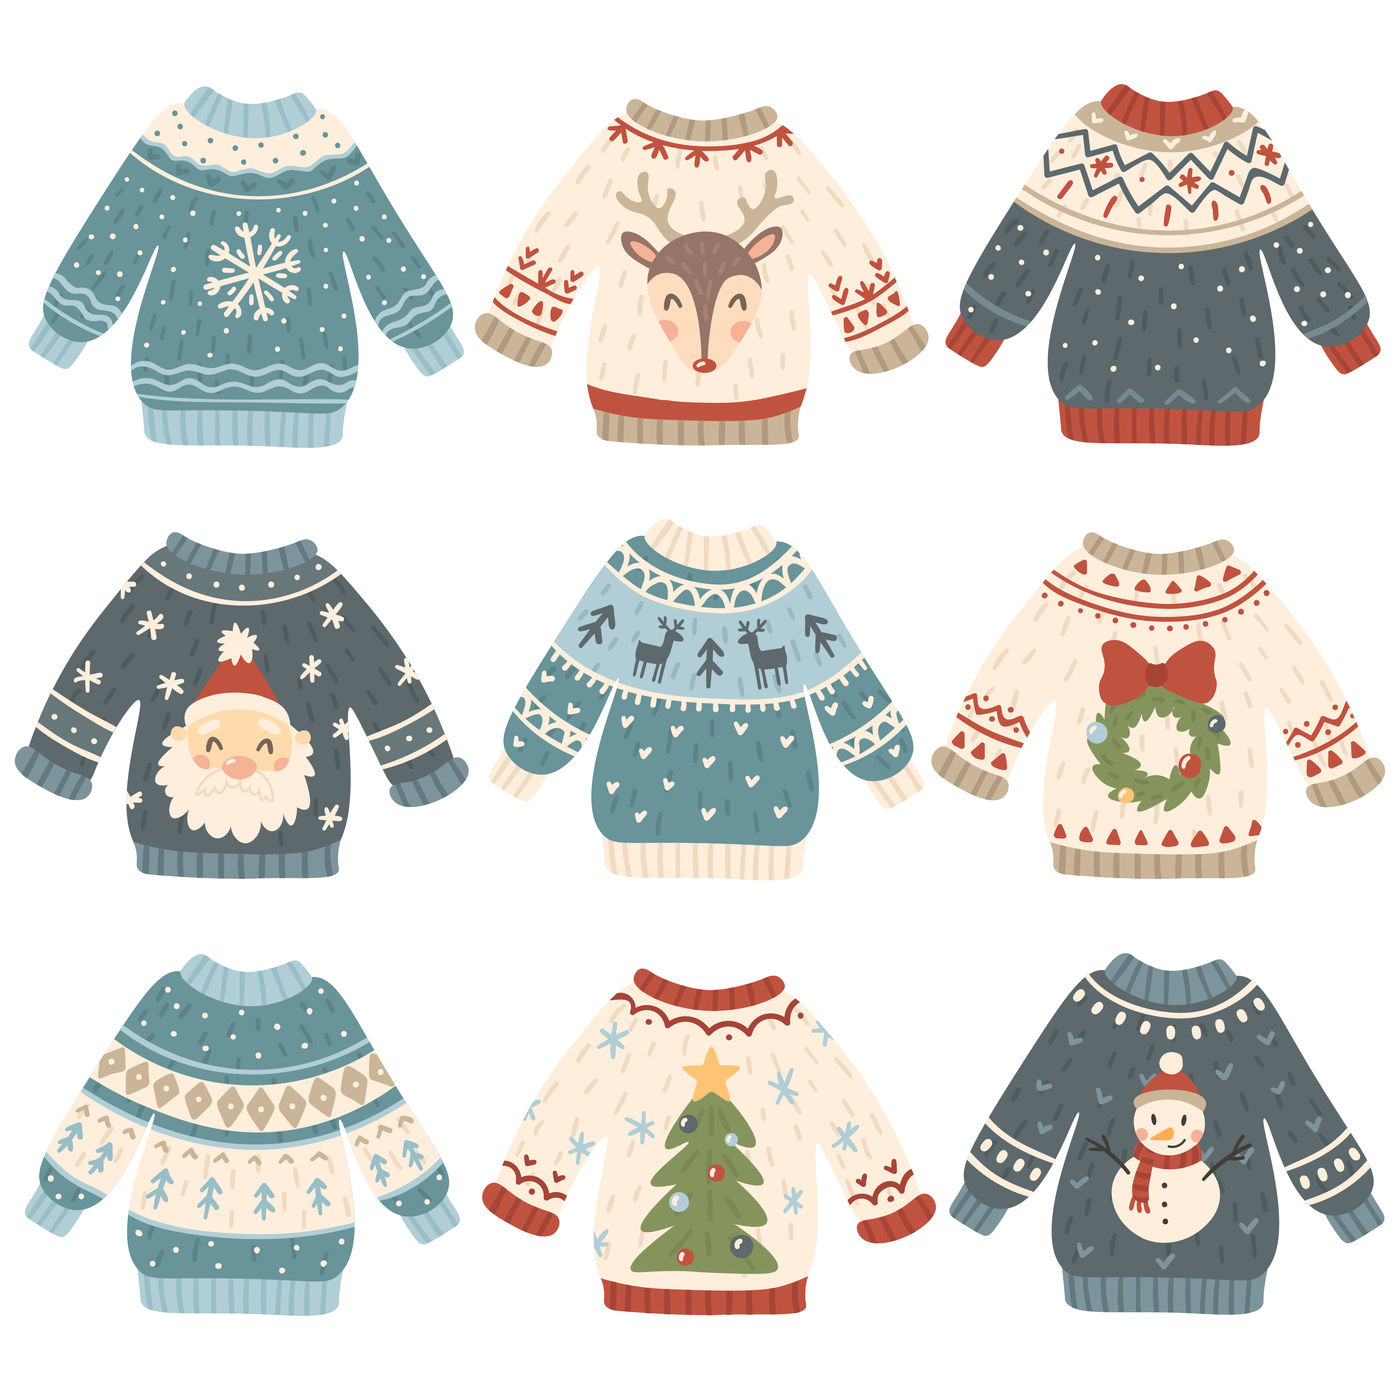 Ugly Christmas Sweaters Cartoon Cute Wool Jumper Knitted Winter